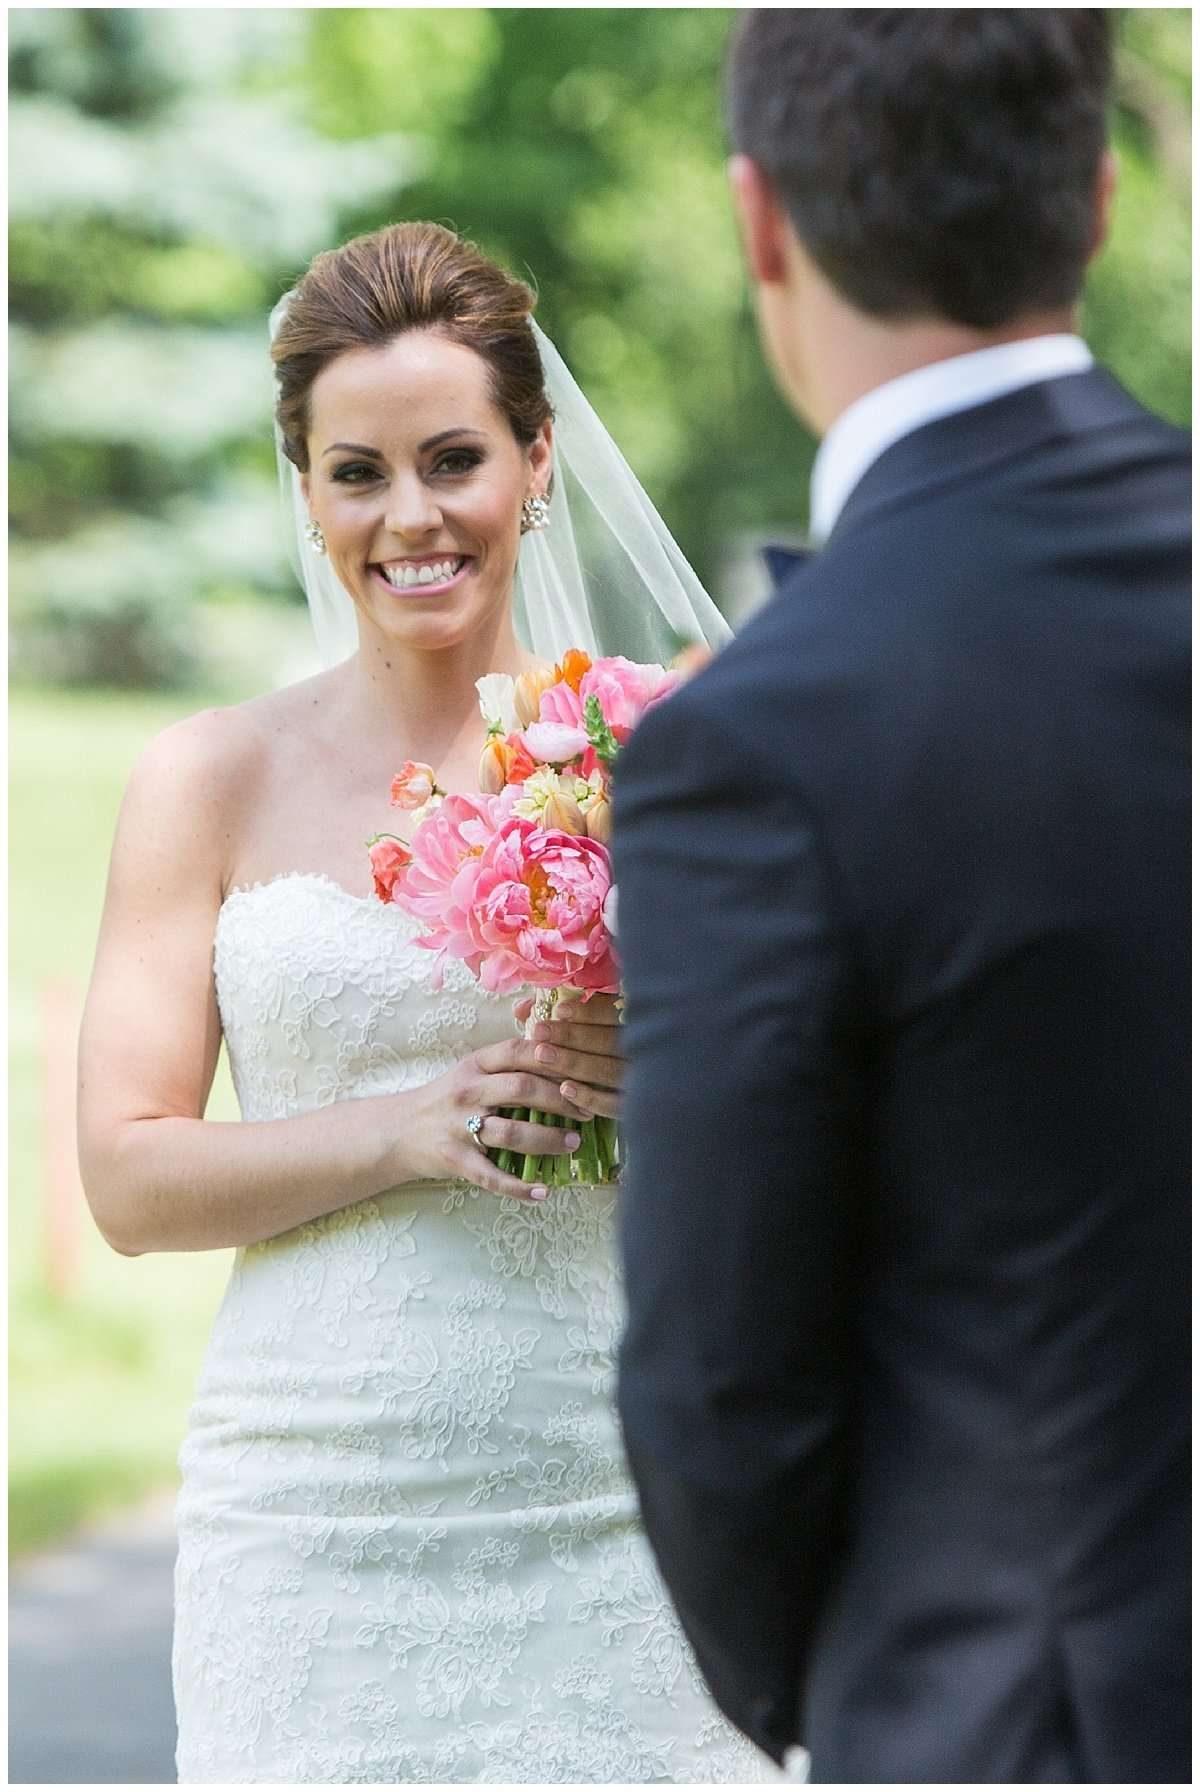 Kim & Lee | A Summer Wedding at Brookside Country Club 40